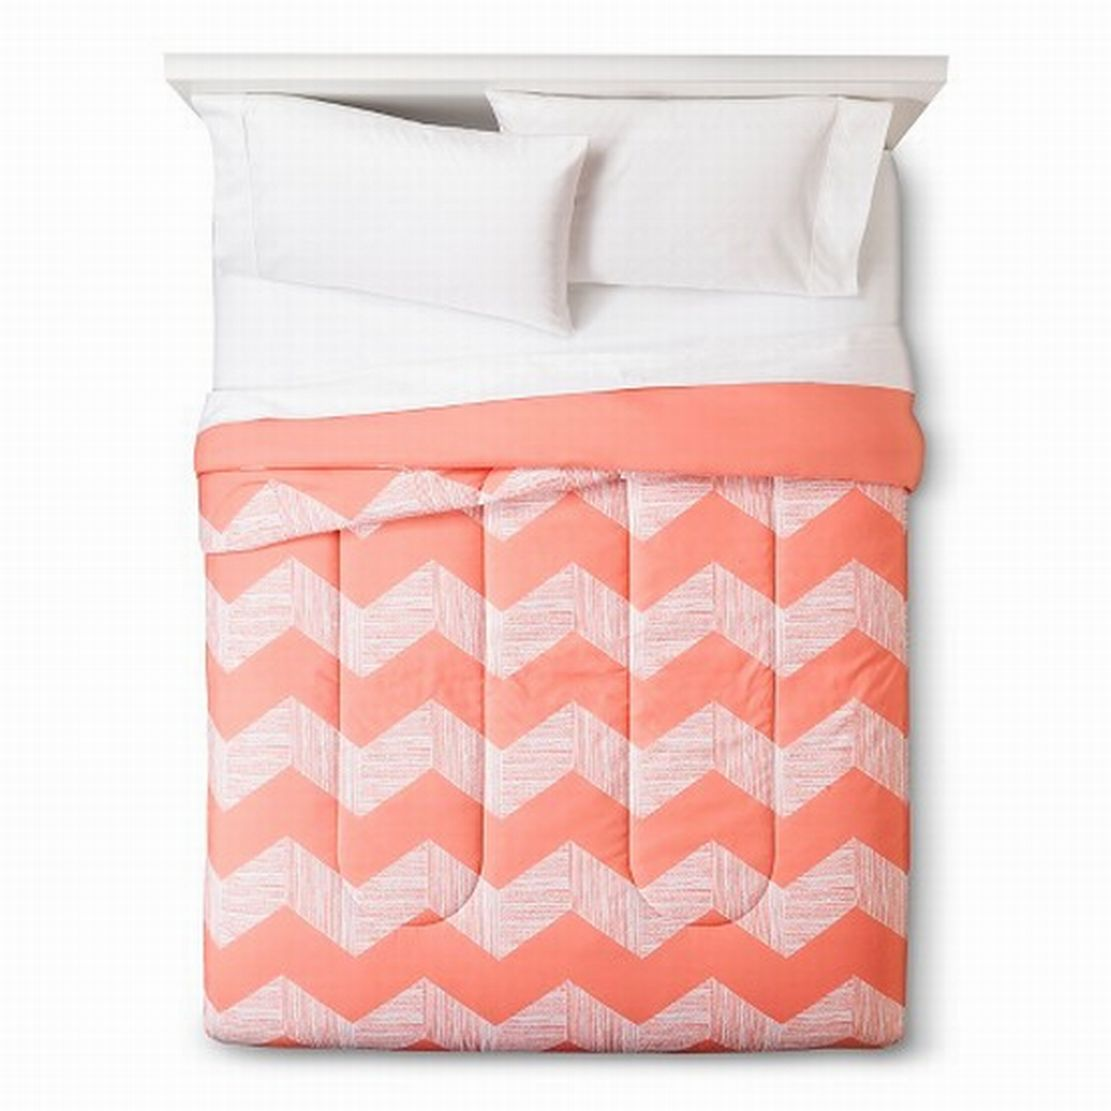 Room Essentials Twin XL Peach Chevron Reversible Comforter Dorm Bed